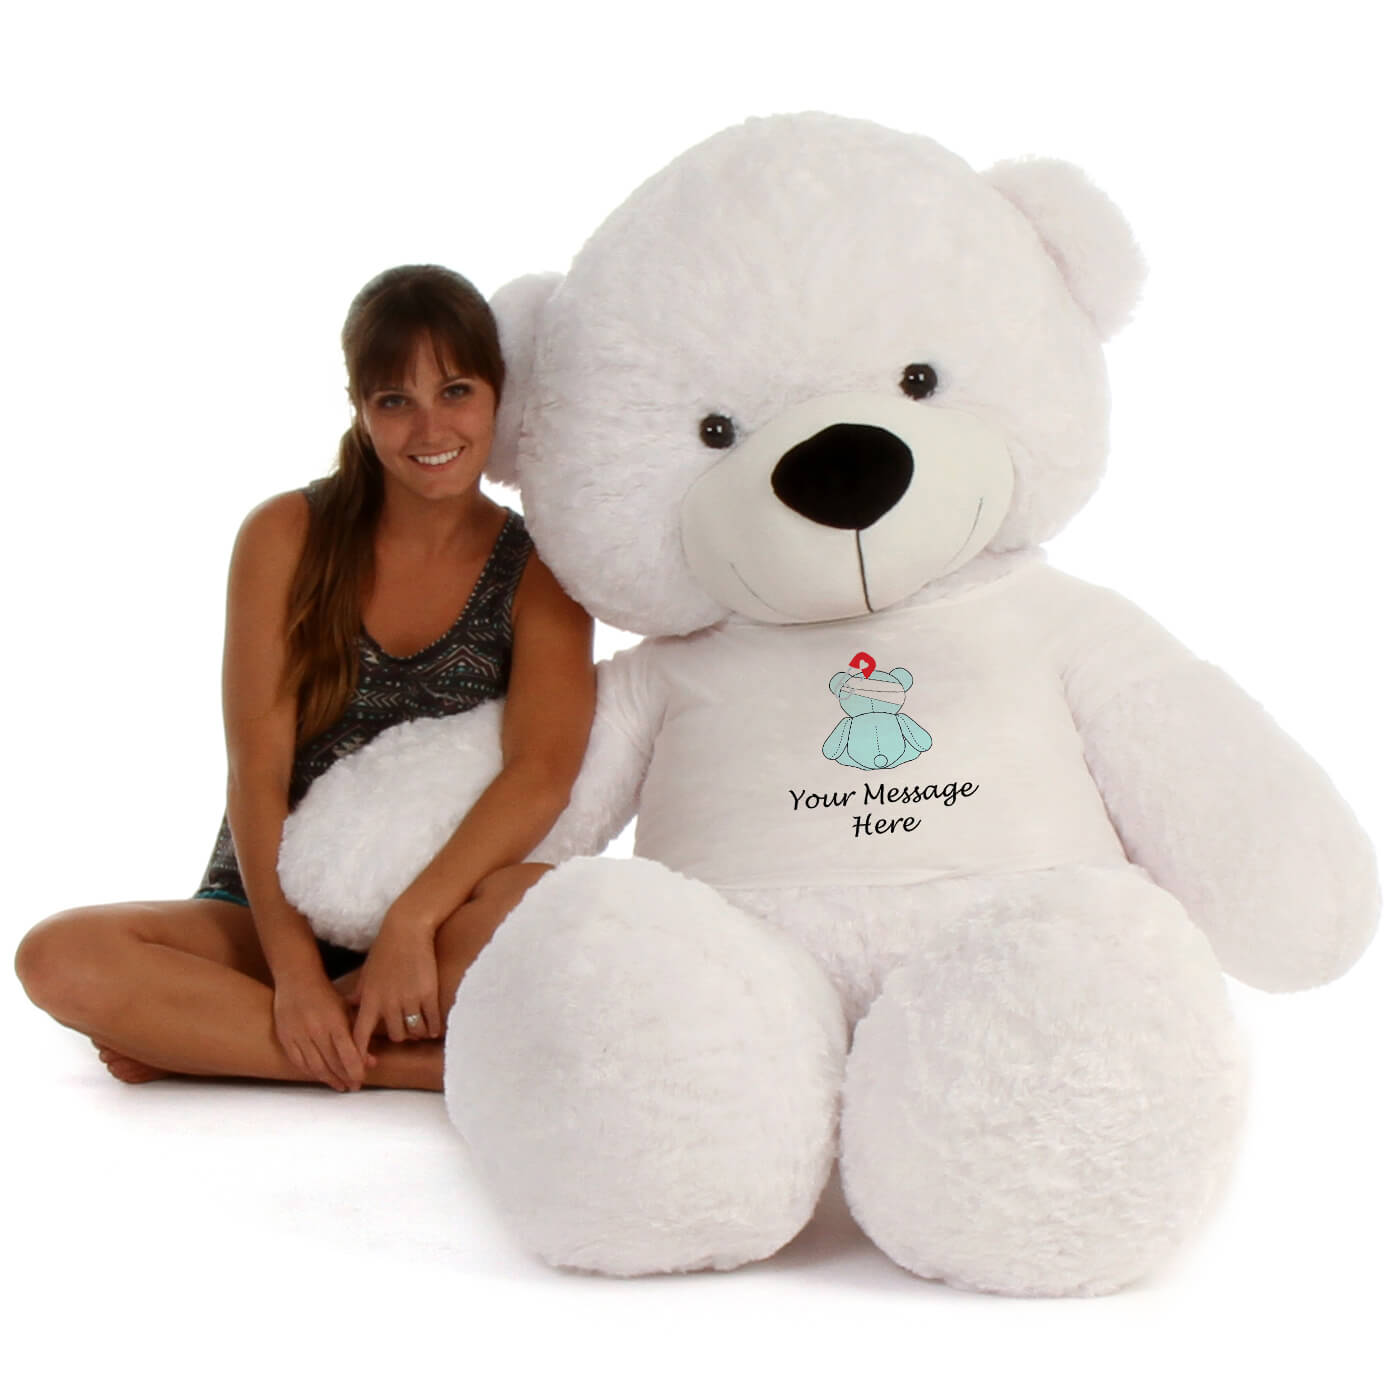 6ft-white-giant-teddy-bear-coco-cuddles-in-a-get-well-soon-your-message-here-t-shirt.jpg